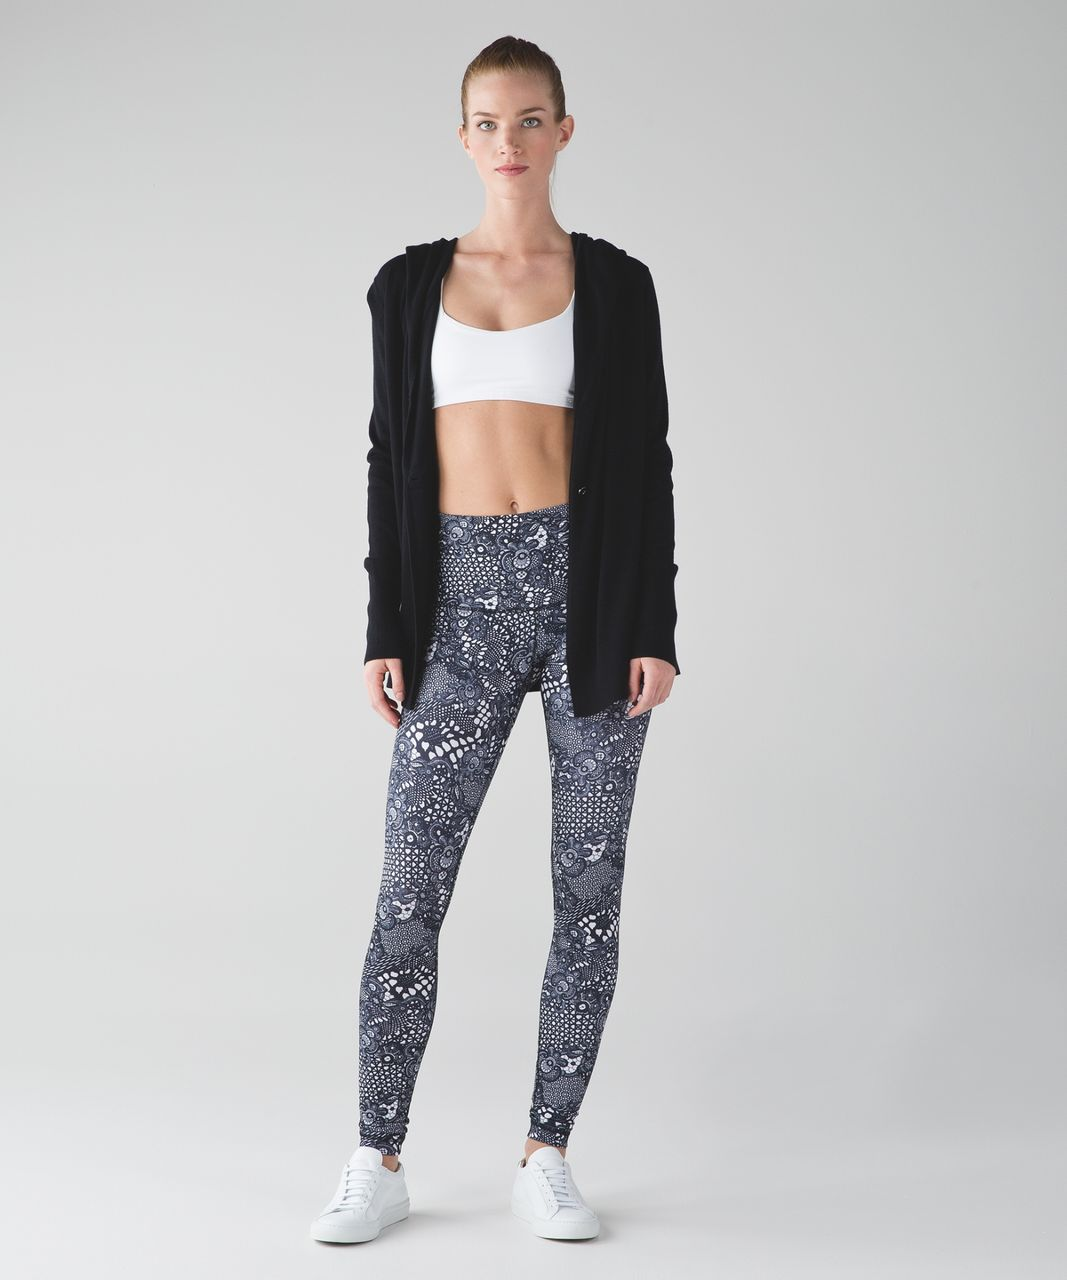 Lululemon Wunder Under Pant (Hi-Rise) - Pretty Lace White Black